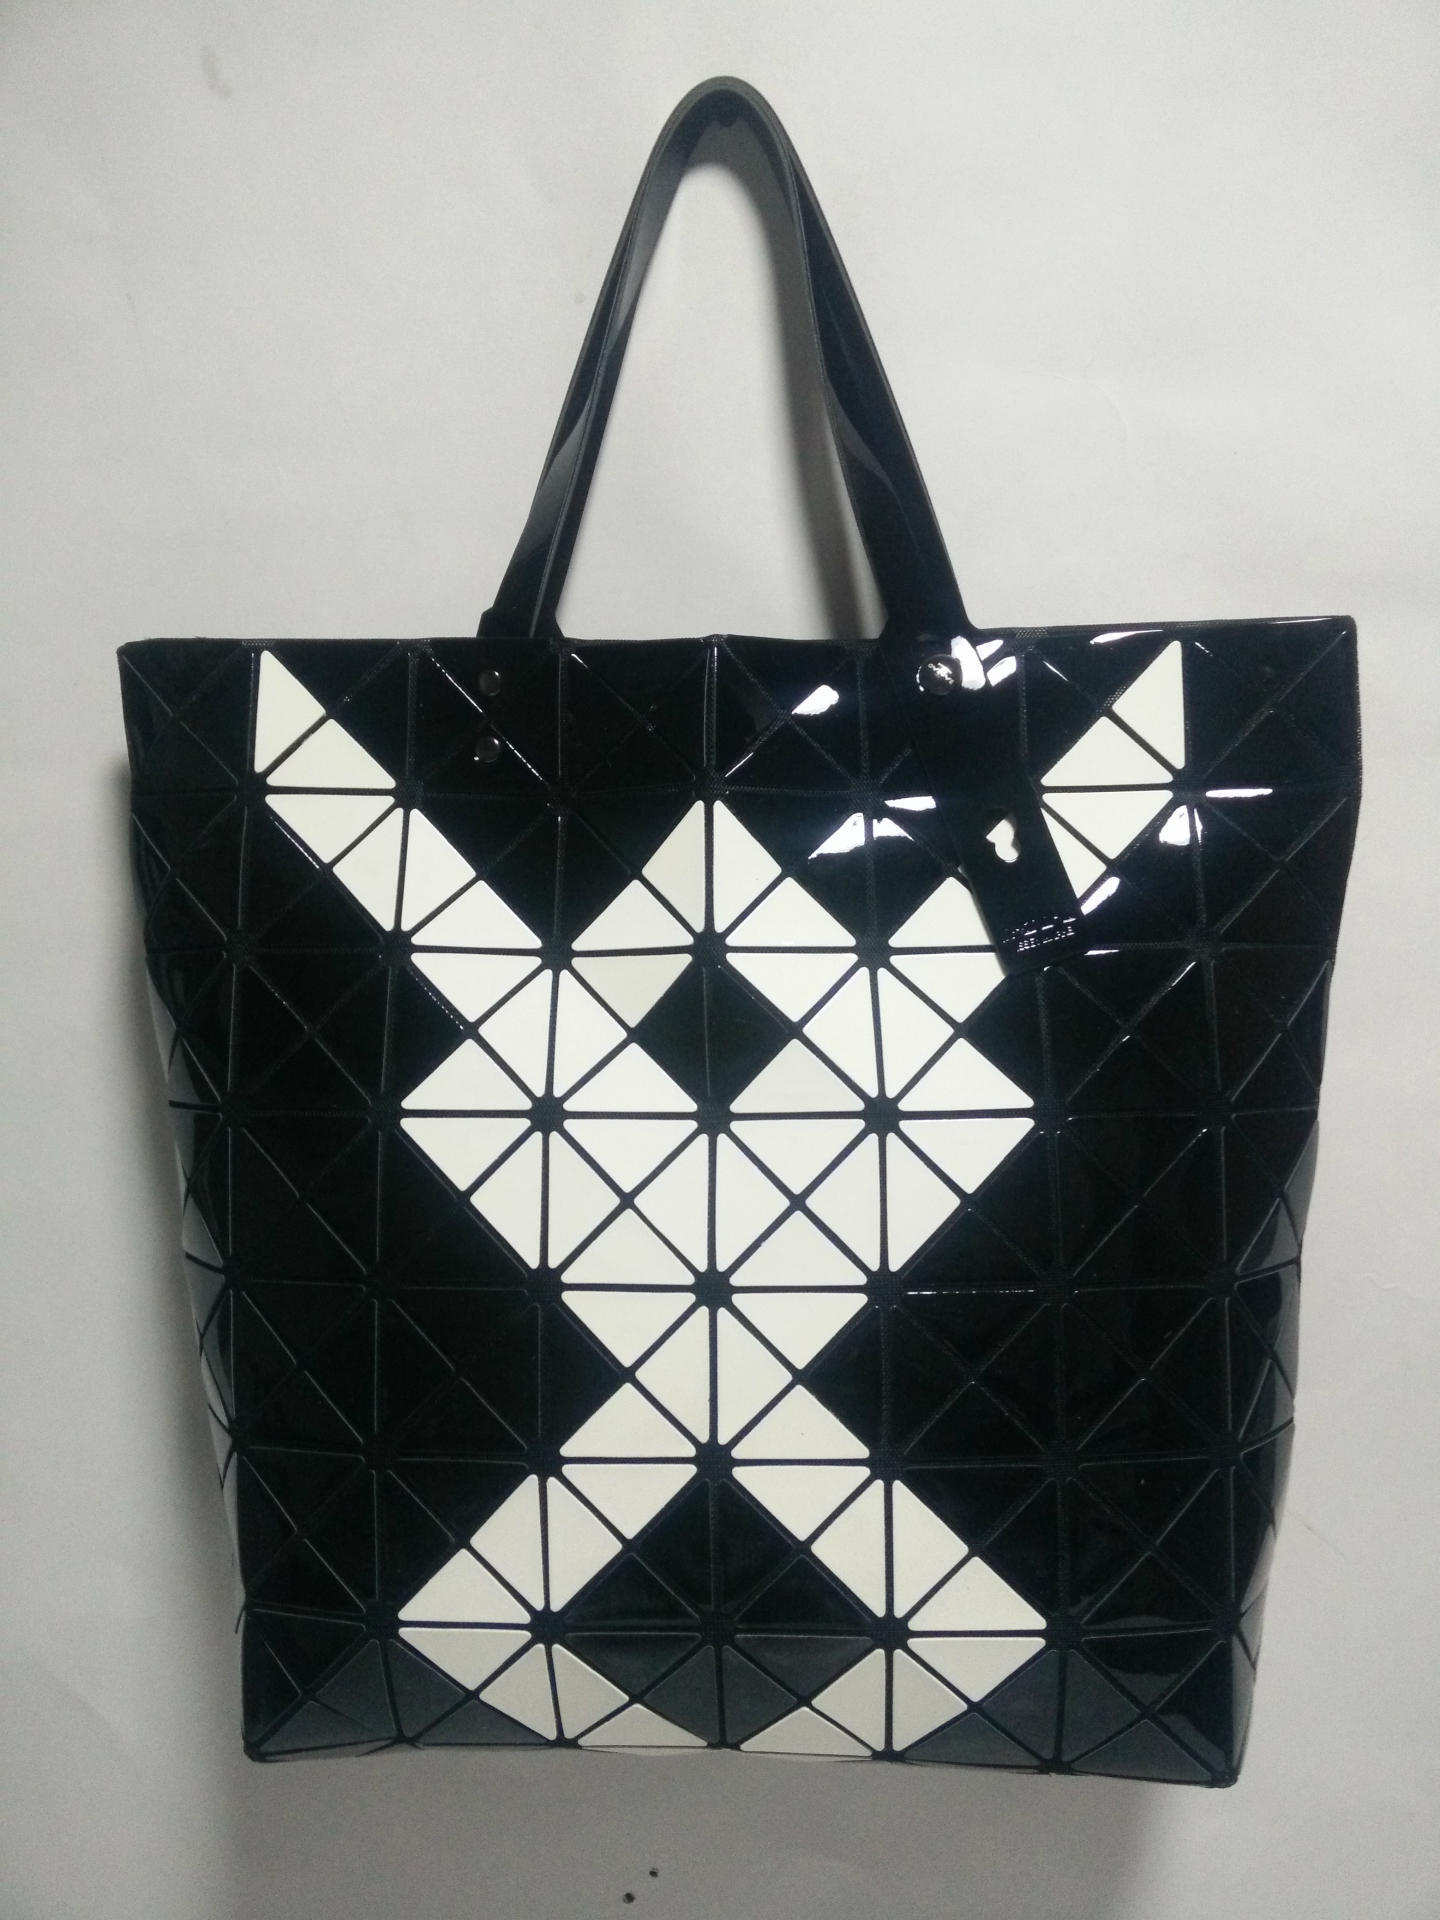 Hot Fashion Brand Women's Same As Baobao Casual Bag Ladies' Bao Bao  Lattice Geometric Patchwork Handbag Tote Bag8*8 Lattice